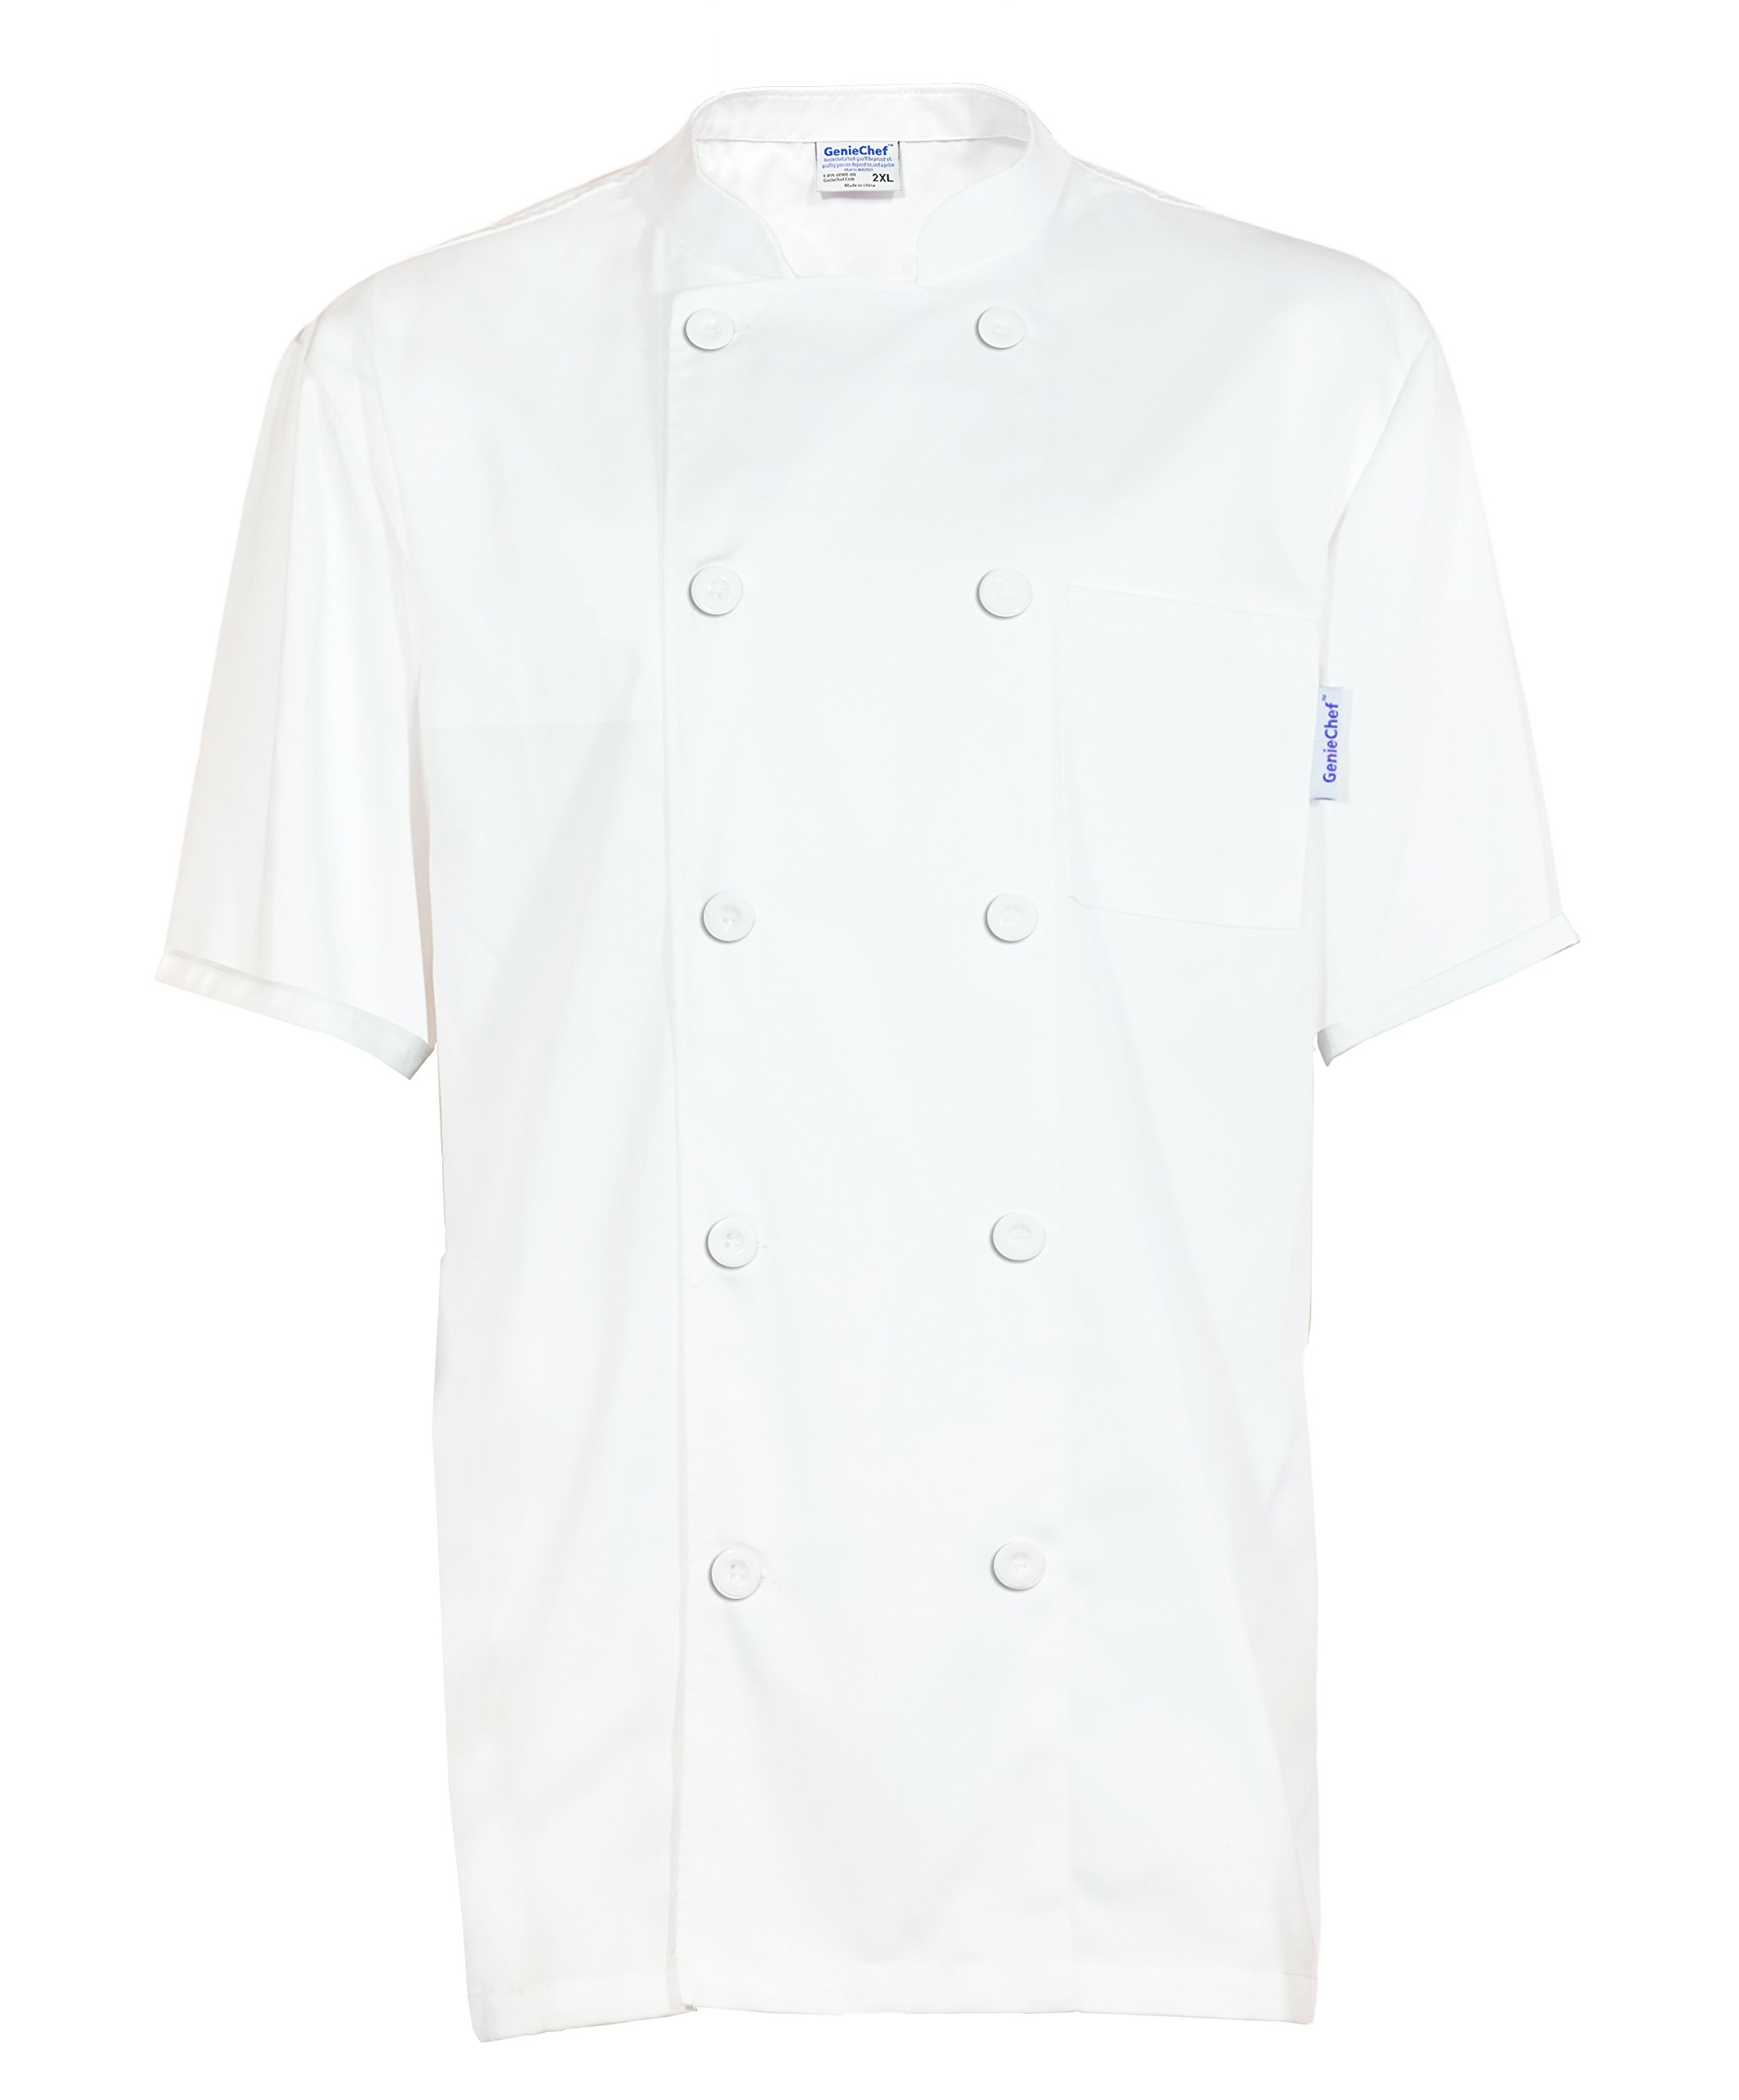 GenieChef Men's Short Sleeve Classic Chef Coat XXXX-L White by GenieChef